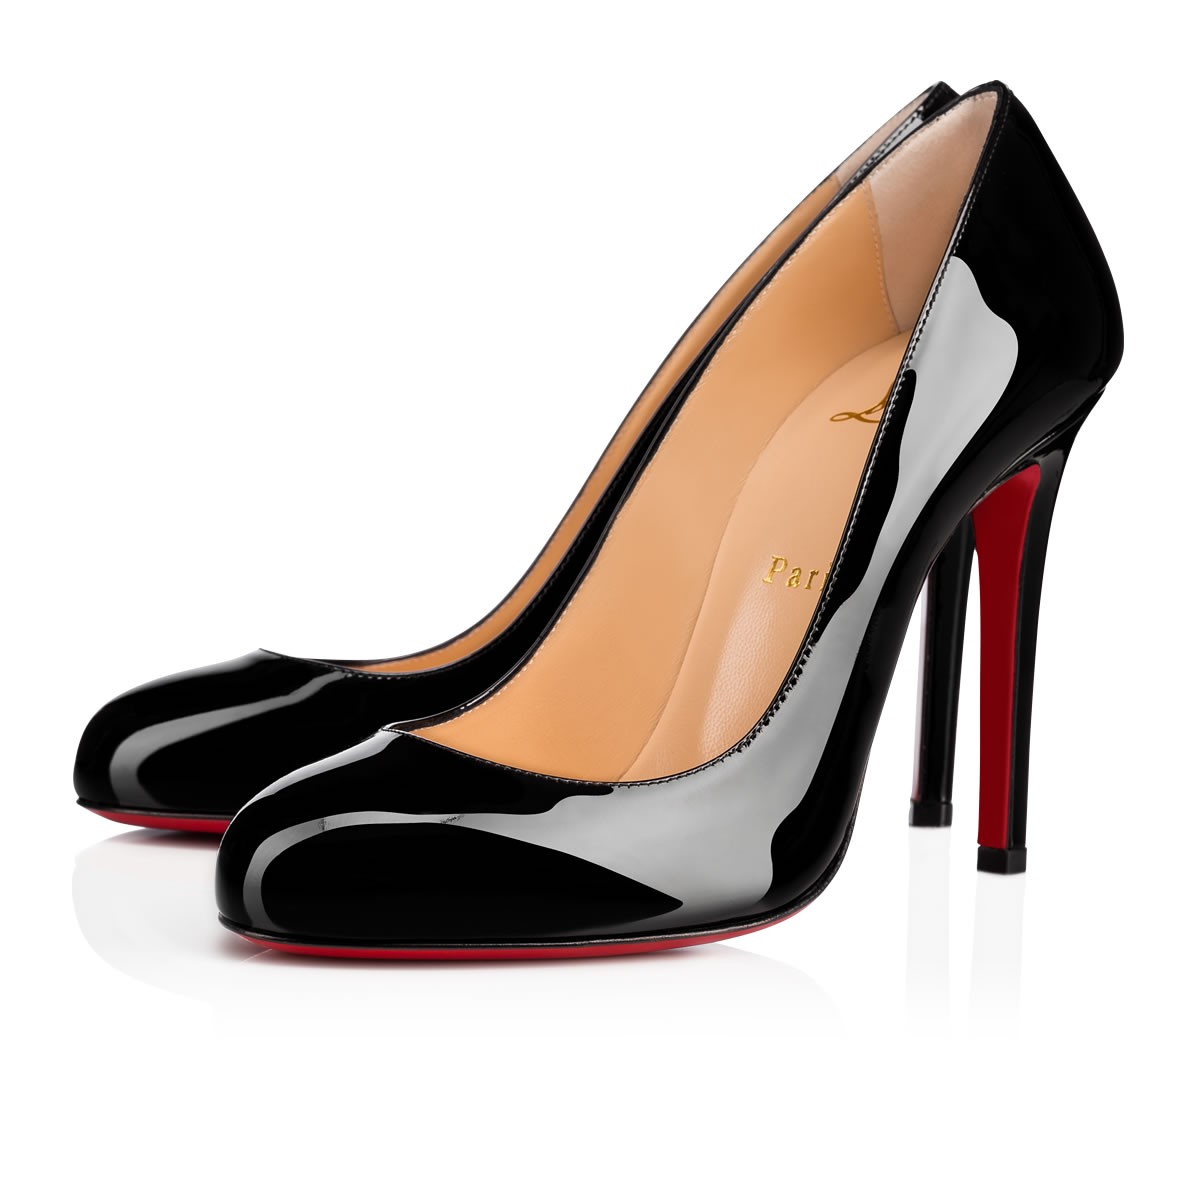 6149244f08b6 FIFILLE PATENT 100 Black Patent Calfskin - Women Shoes - Christian Louboutin